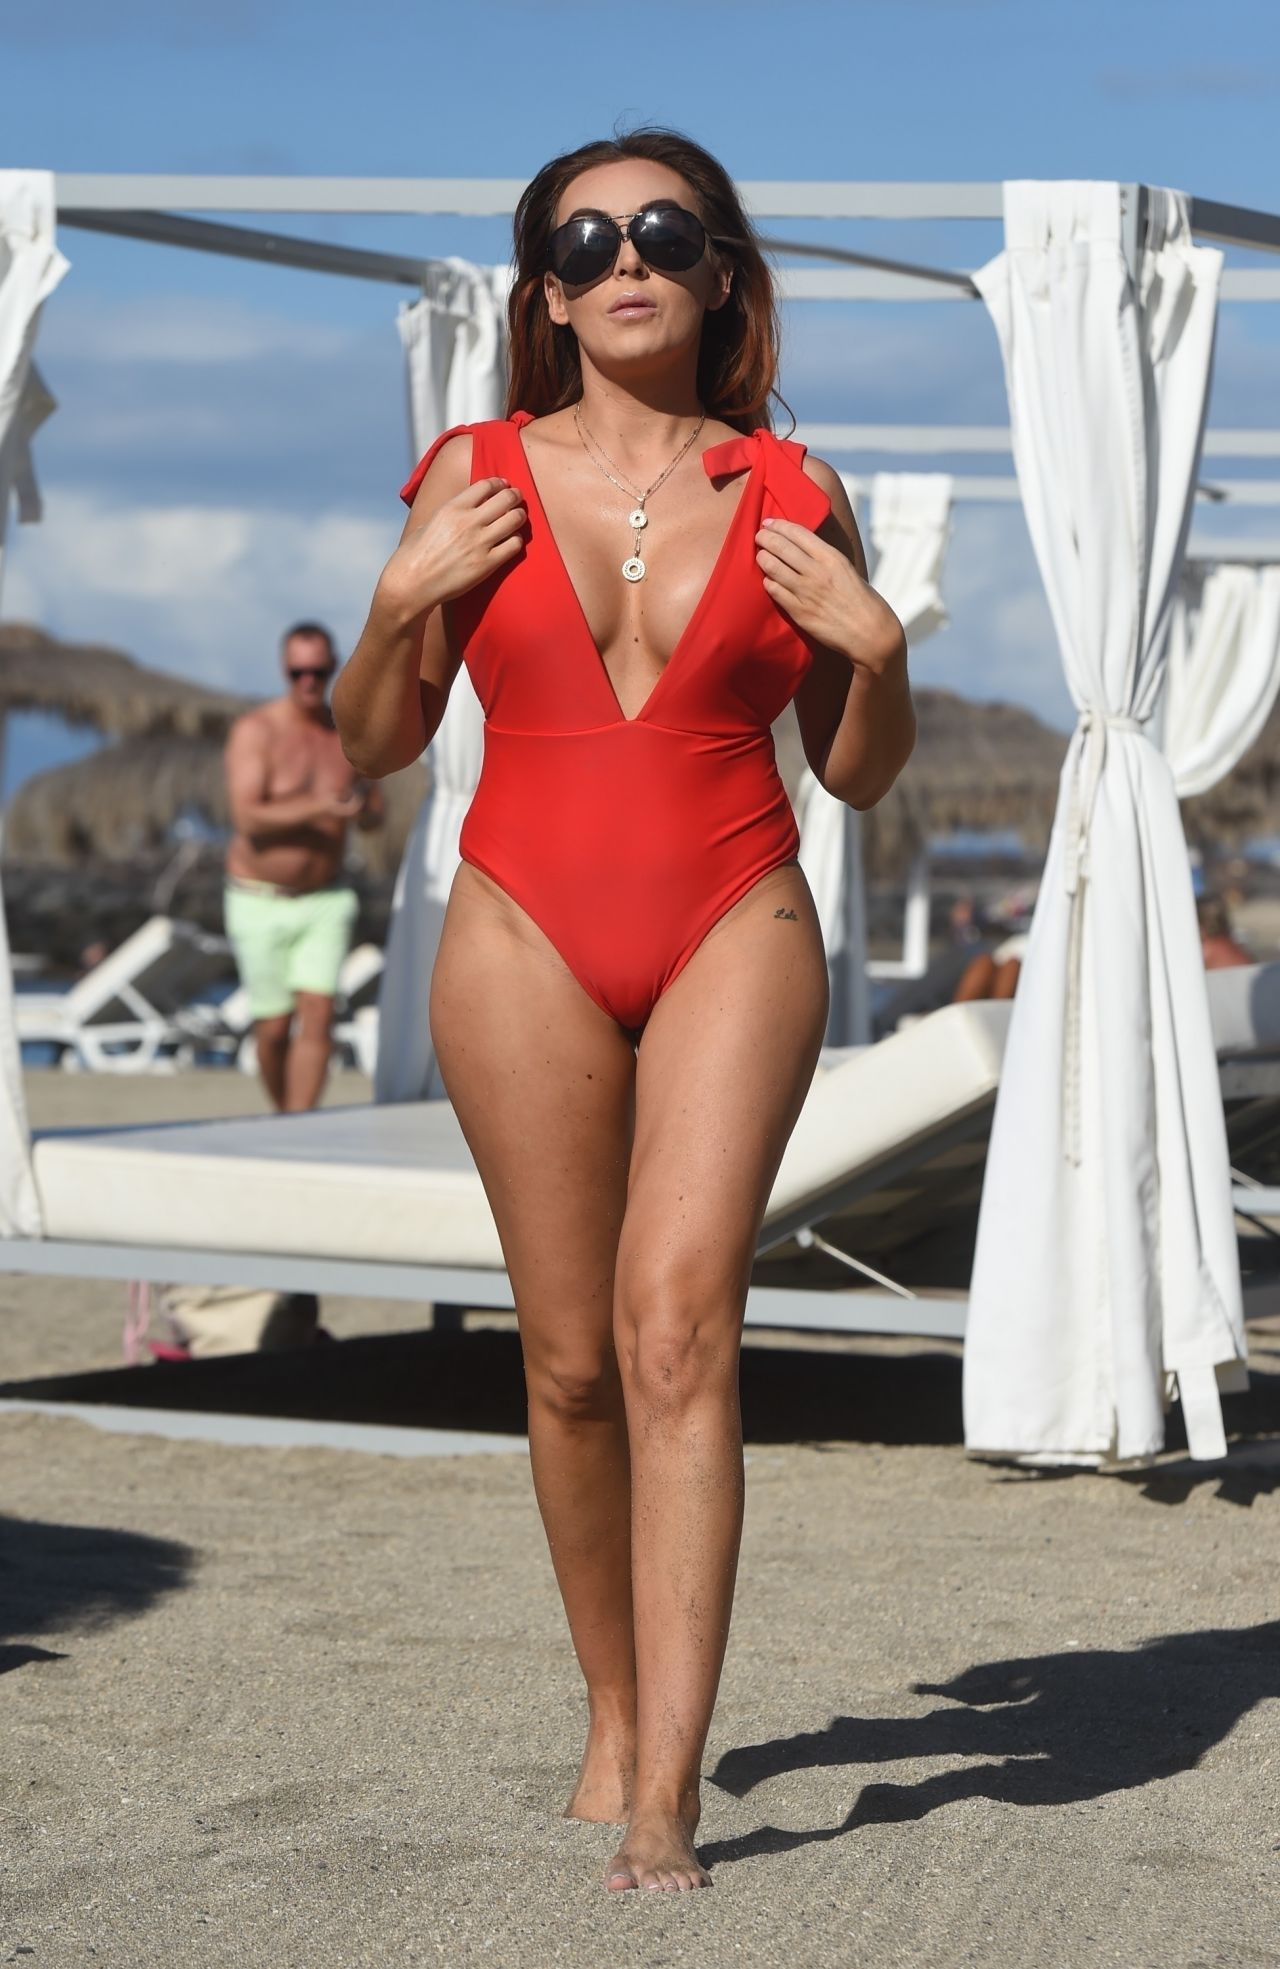 Laura Simpson In A Red Swimsuit On The Beach In The Canary